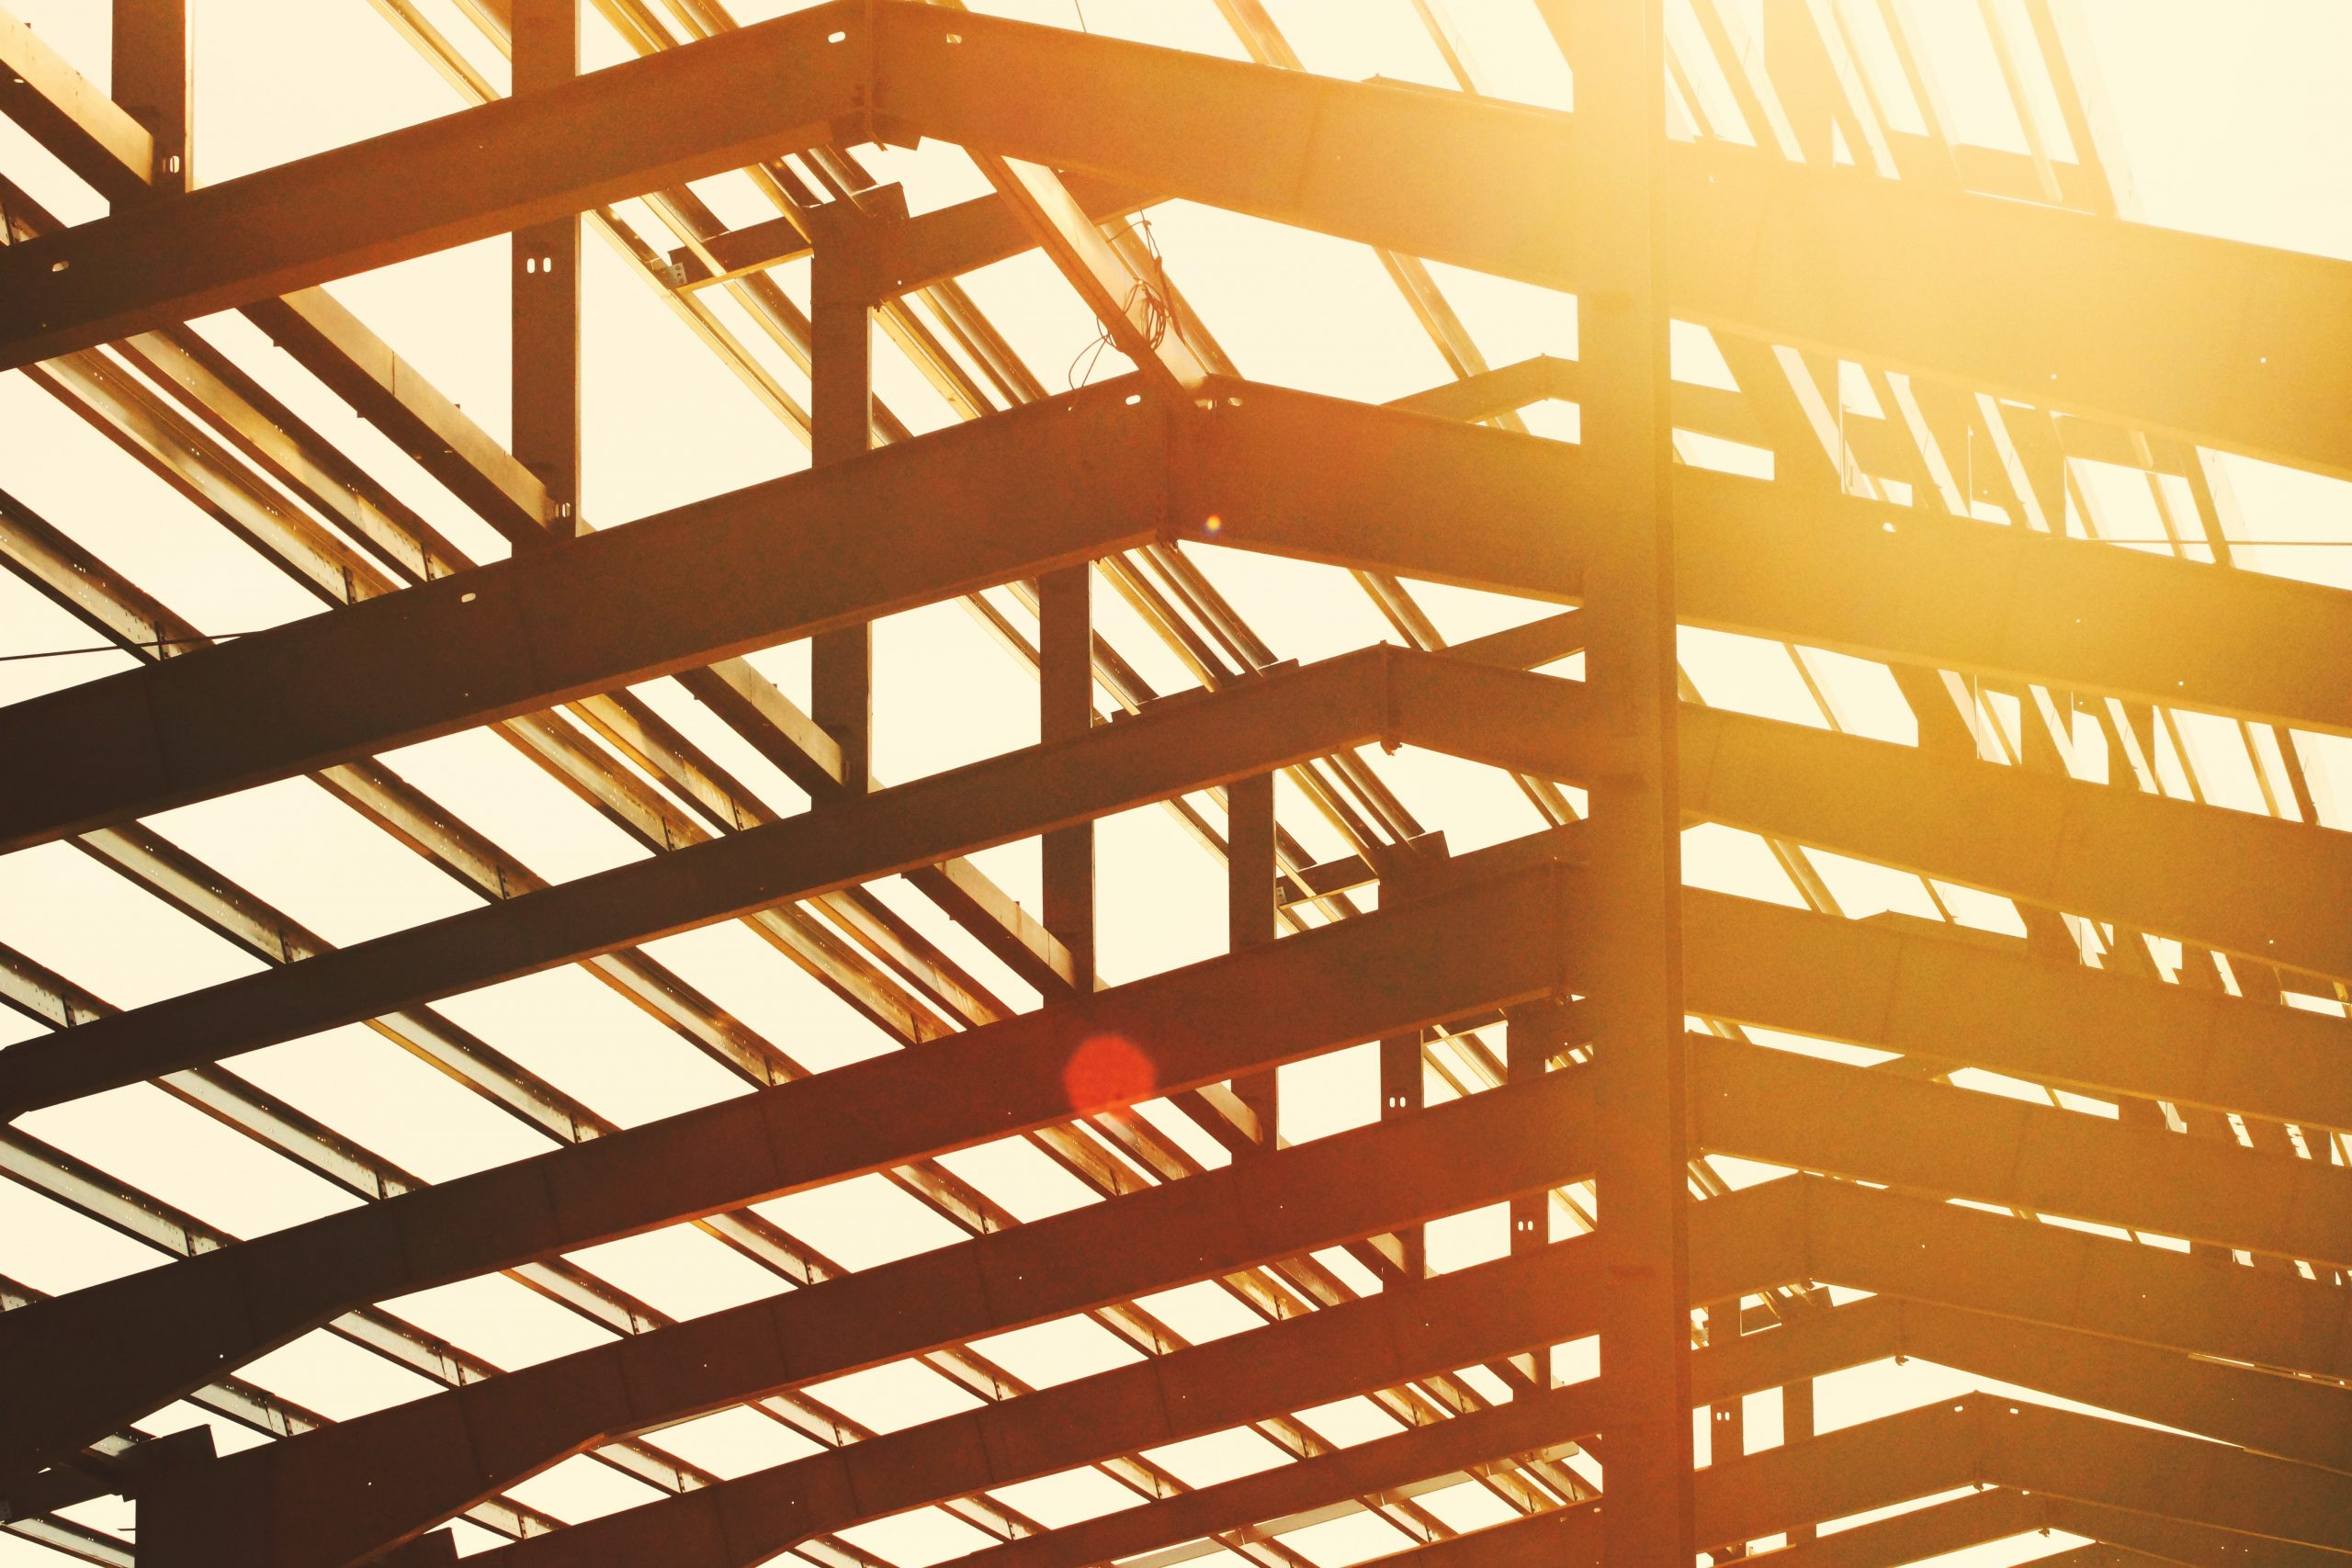 Building, construction and infrastructure industry leaders call for urgent reform